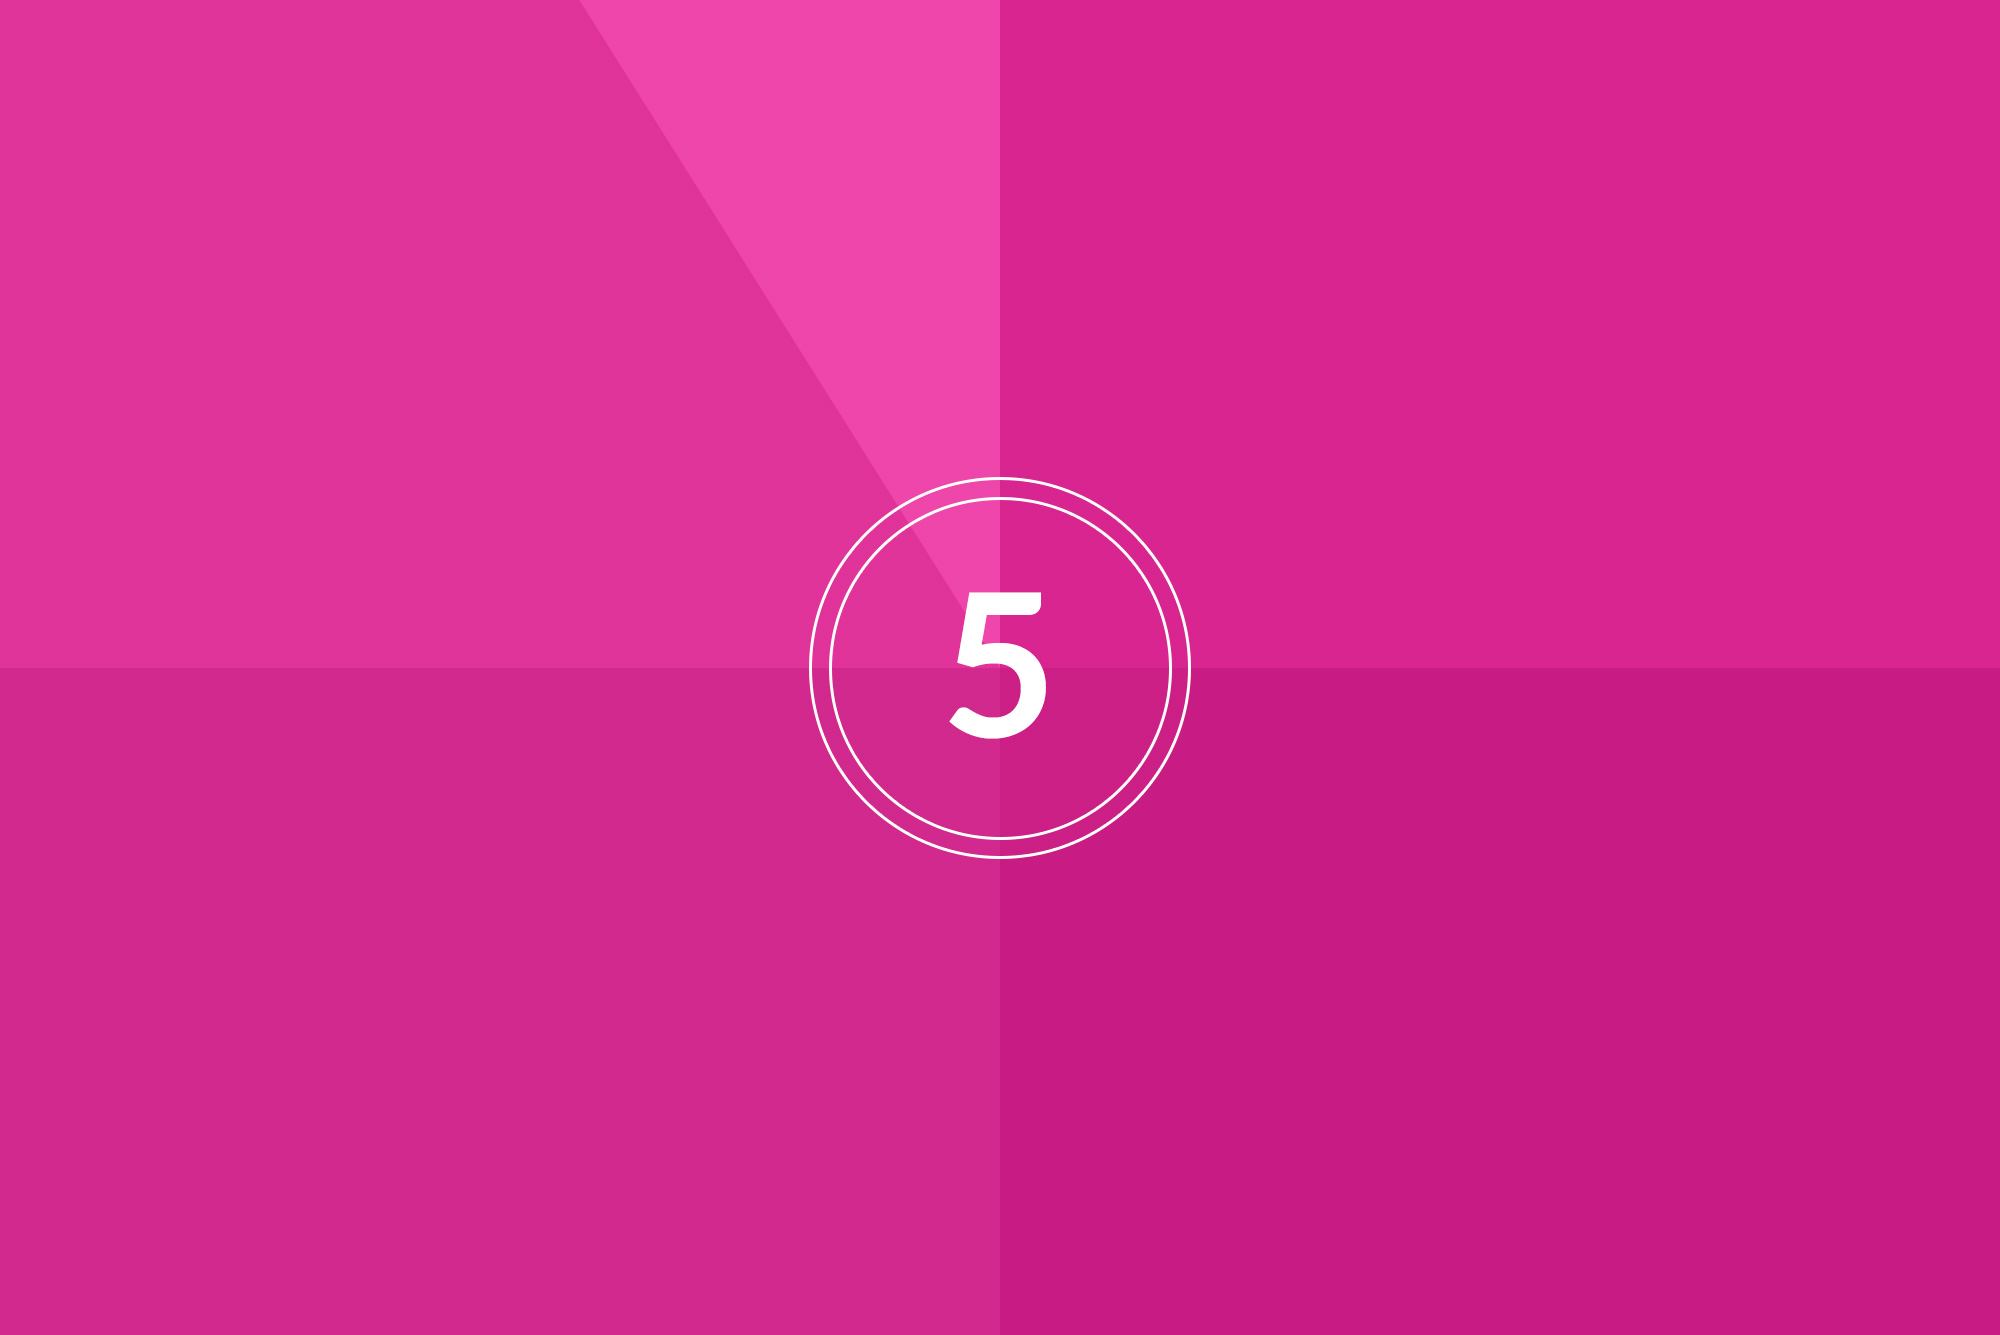 Countdown on pink background - Quality content